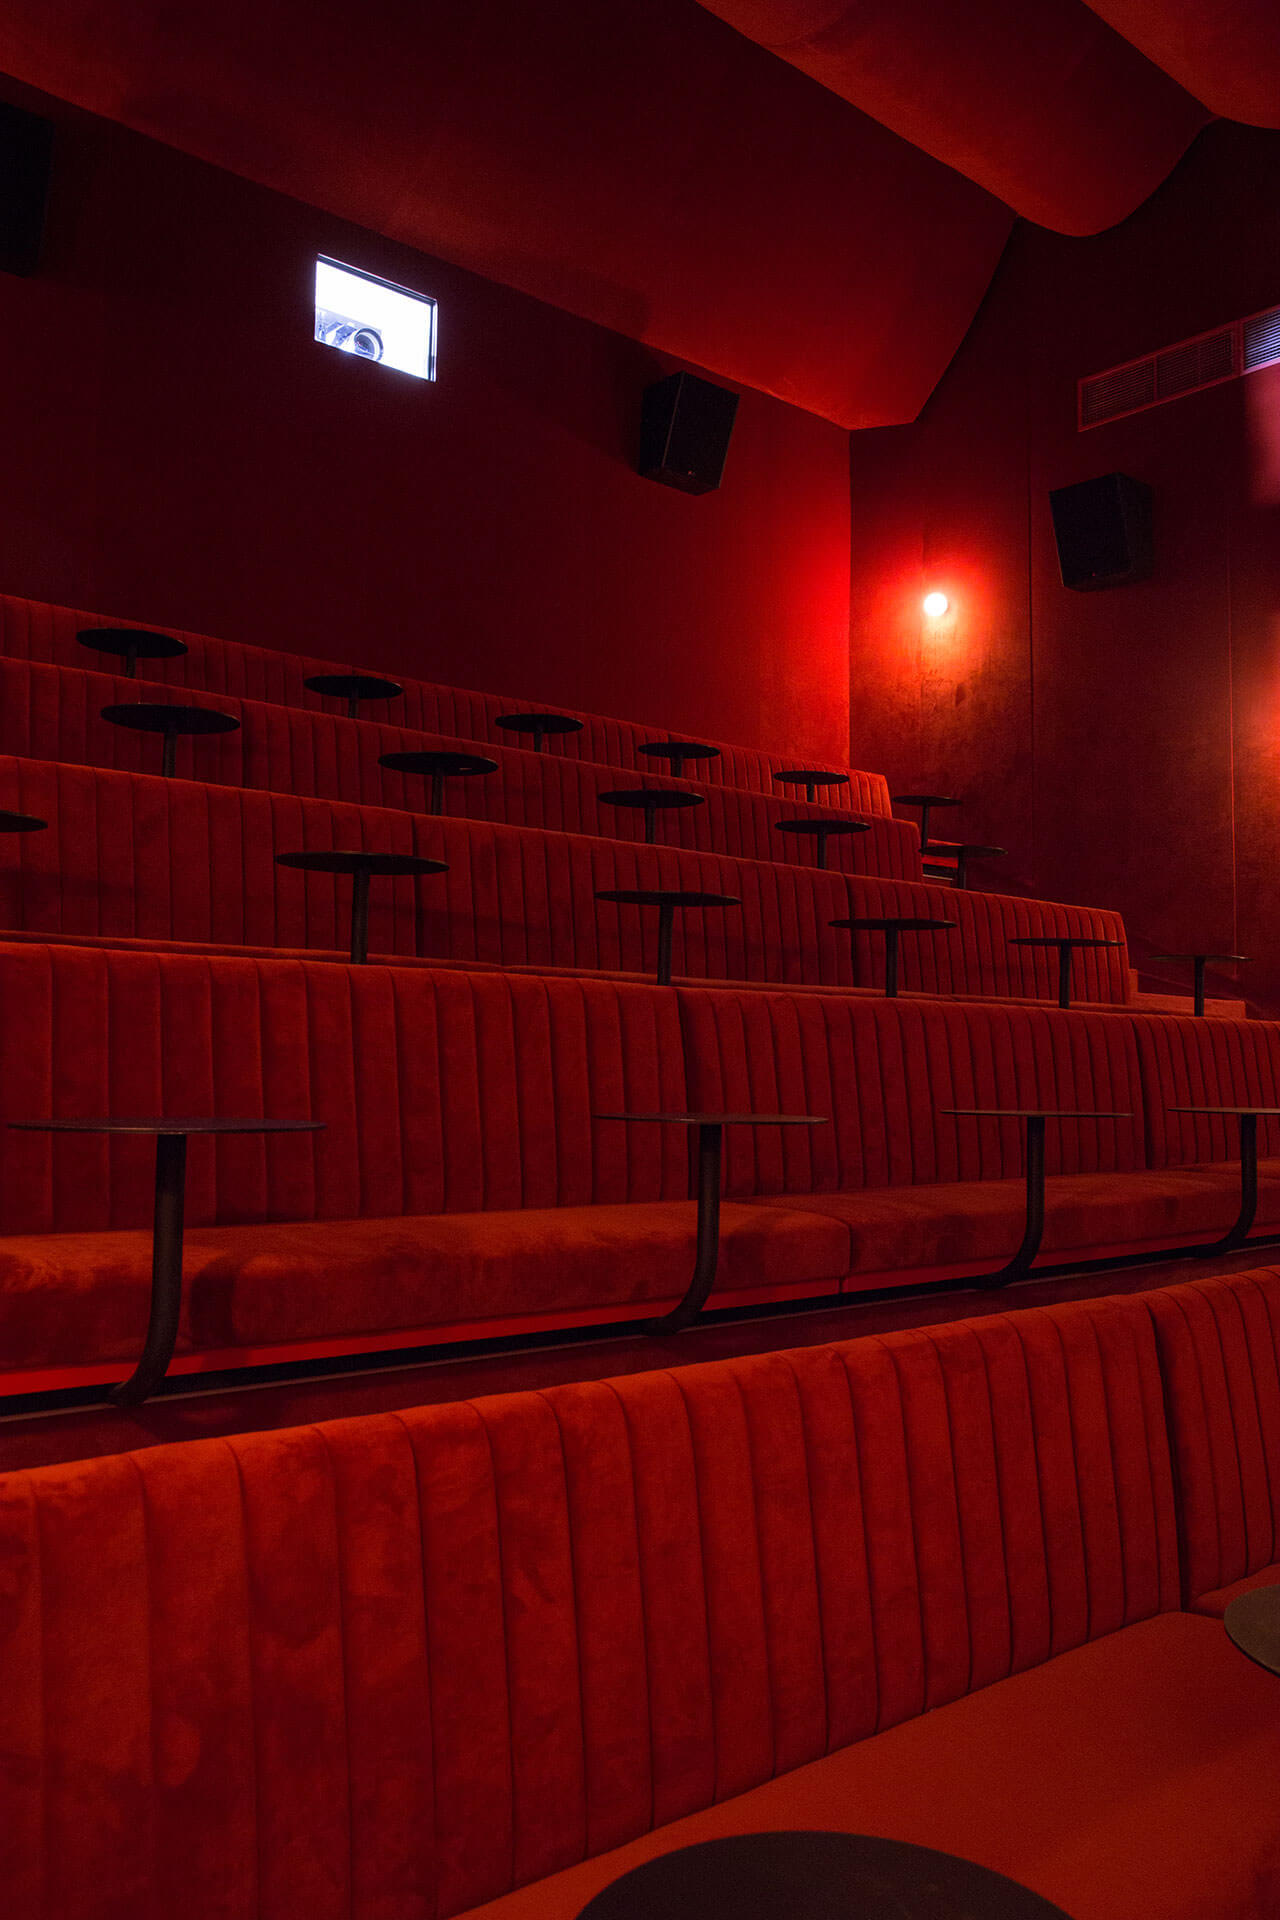 Interior of the main theater of this former adult cinema